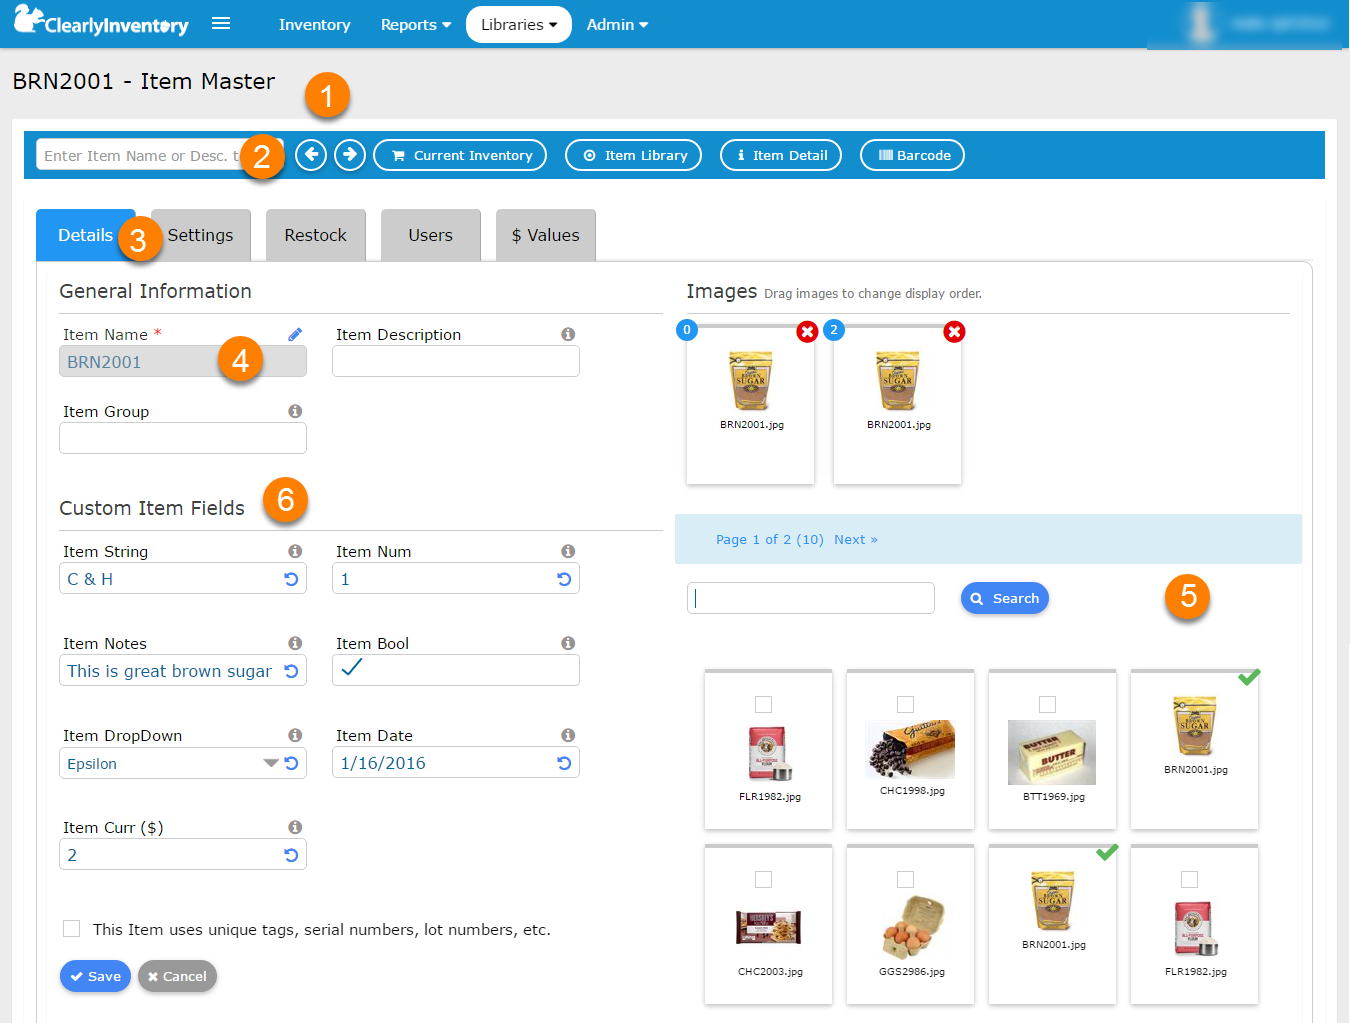 A screenshot of the MyInventory Page, the main interface of the Clearly Inventory application.